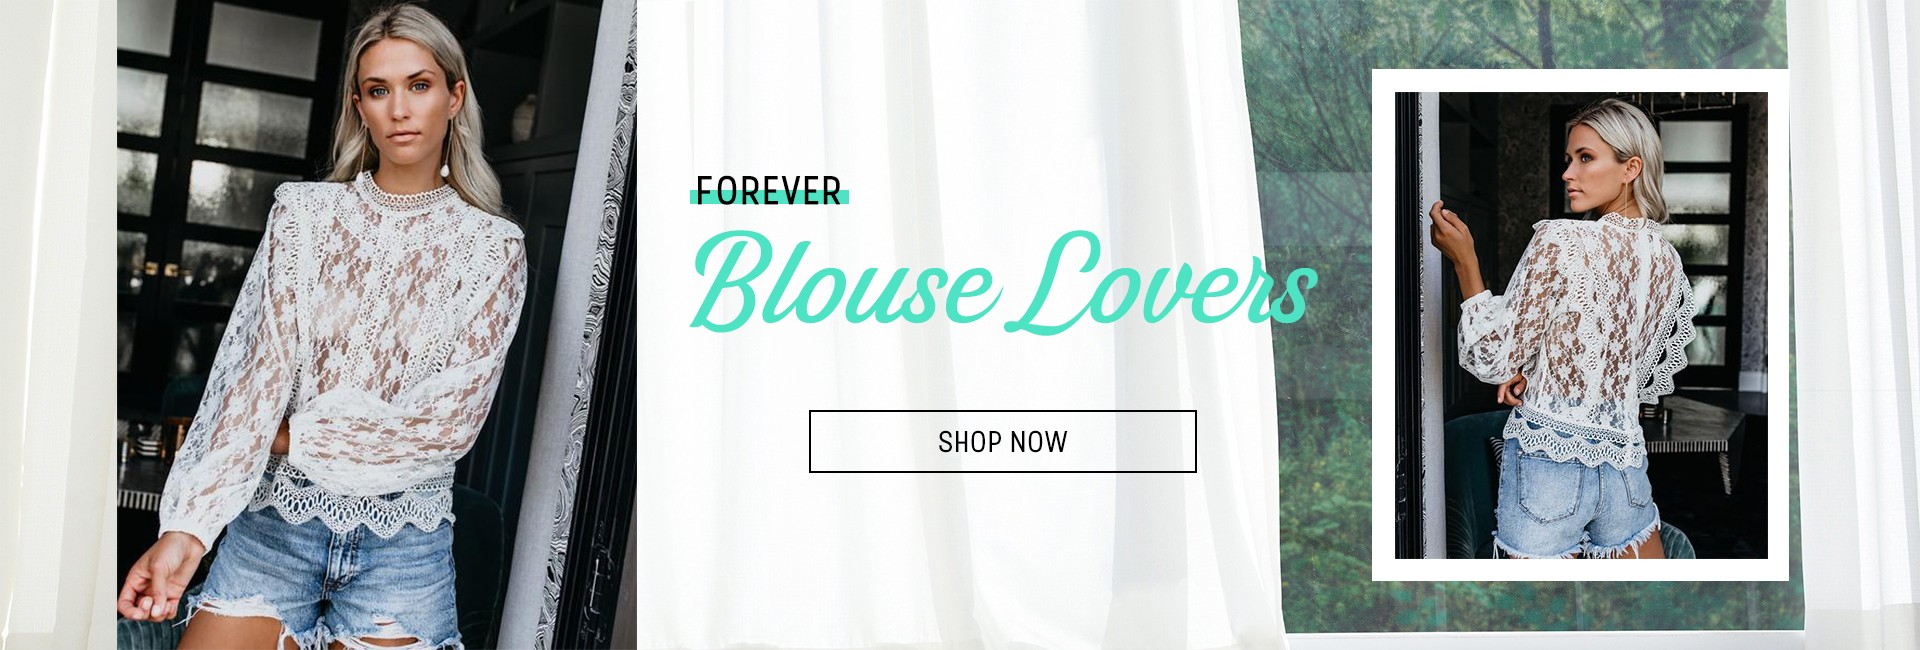 Forever Blouse Lovers